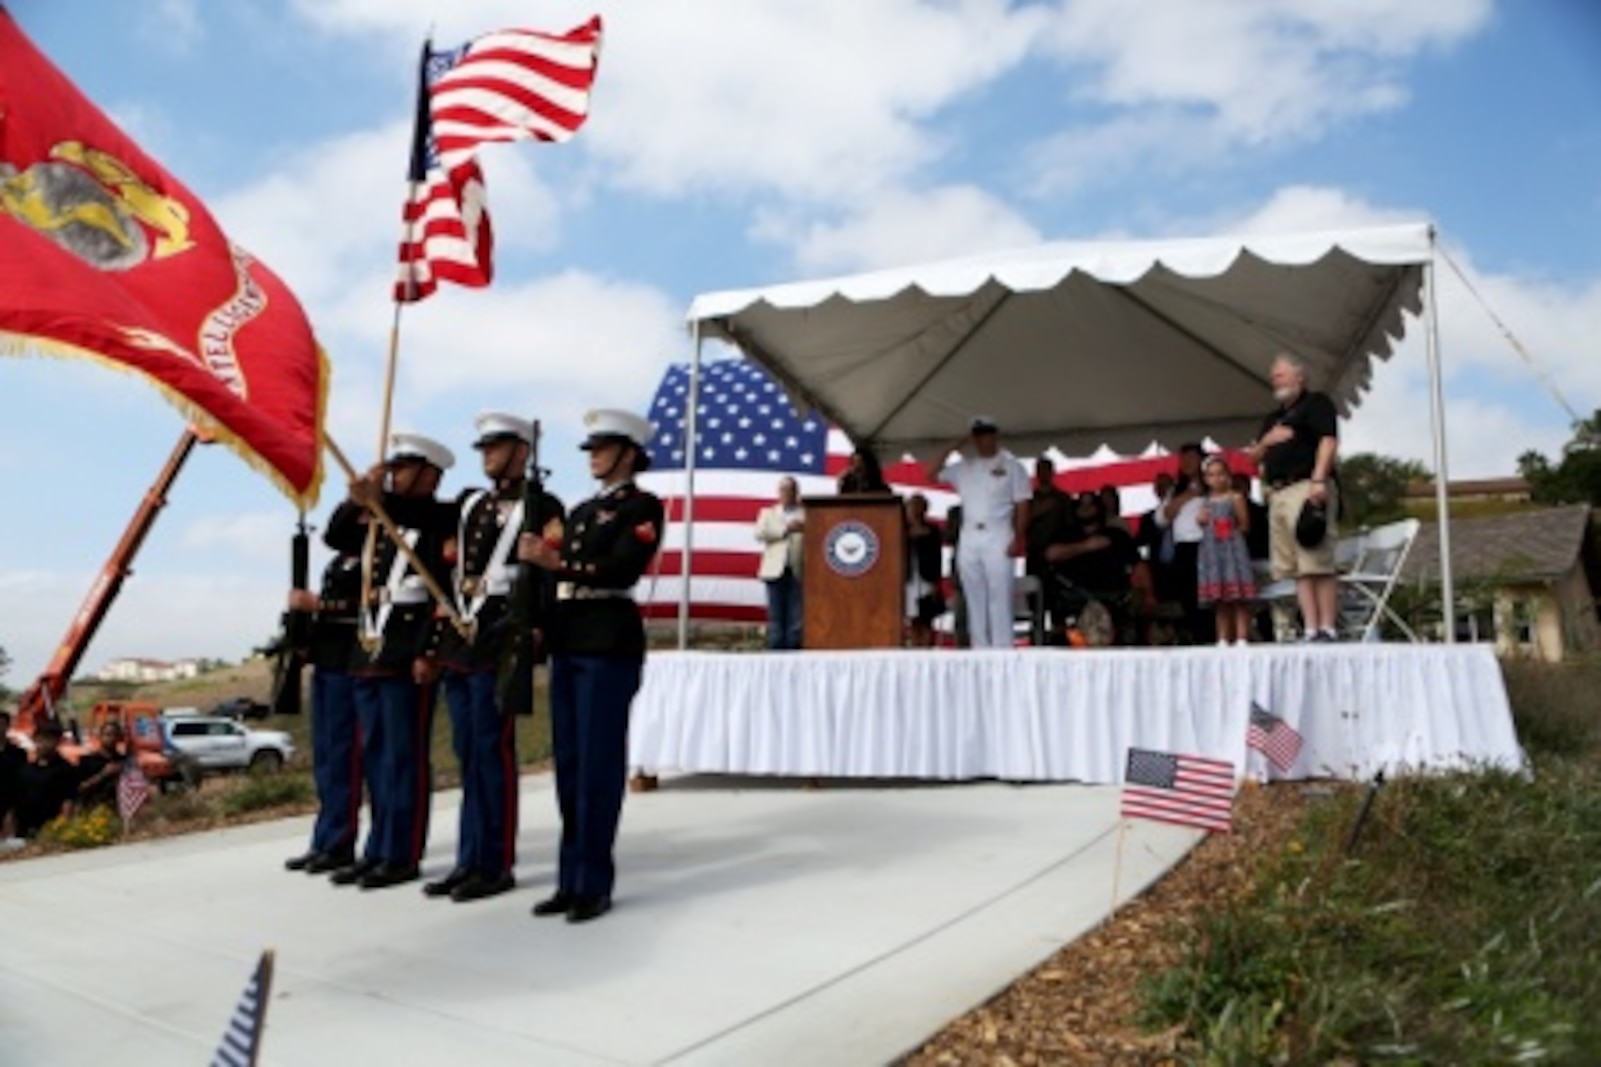 Marines from 1st Intelligence Battalion, 1st Marine Logistics Group present the national and Marine Corps colors during a ceremony where The Gary Sinise Foundation presented and newly built Smart home to retired Staff Sgt. Jason Ross and his family. Ross stepped was injured by an improvised explosive device in Afghanistan in 2011 while serving as an explosive ordnance disposal technician and lost both of his legs as a result. The new home has smart technology that will significantly reduce the difficulty of everyday tasks for Ross and allow him and his family to live more comfortably.